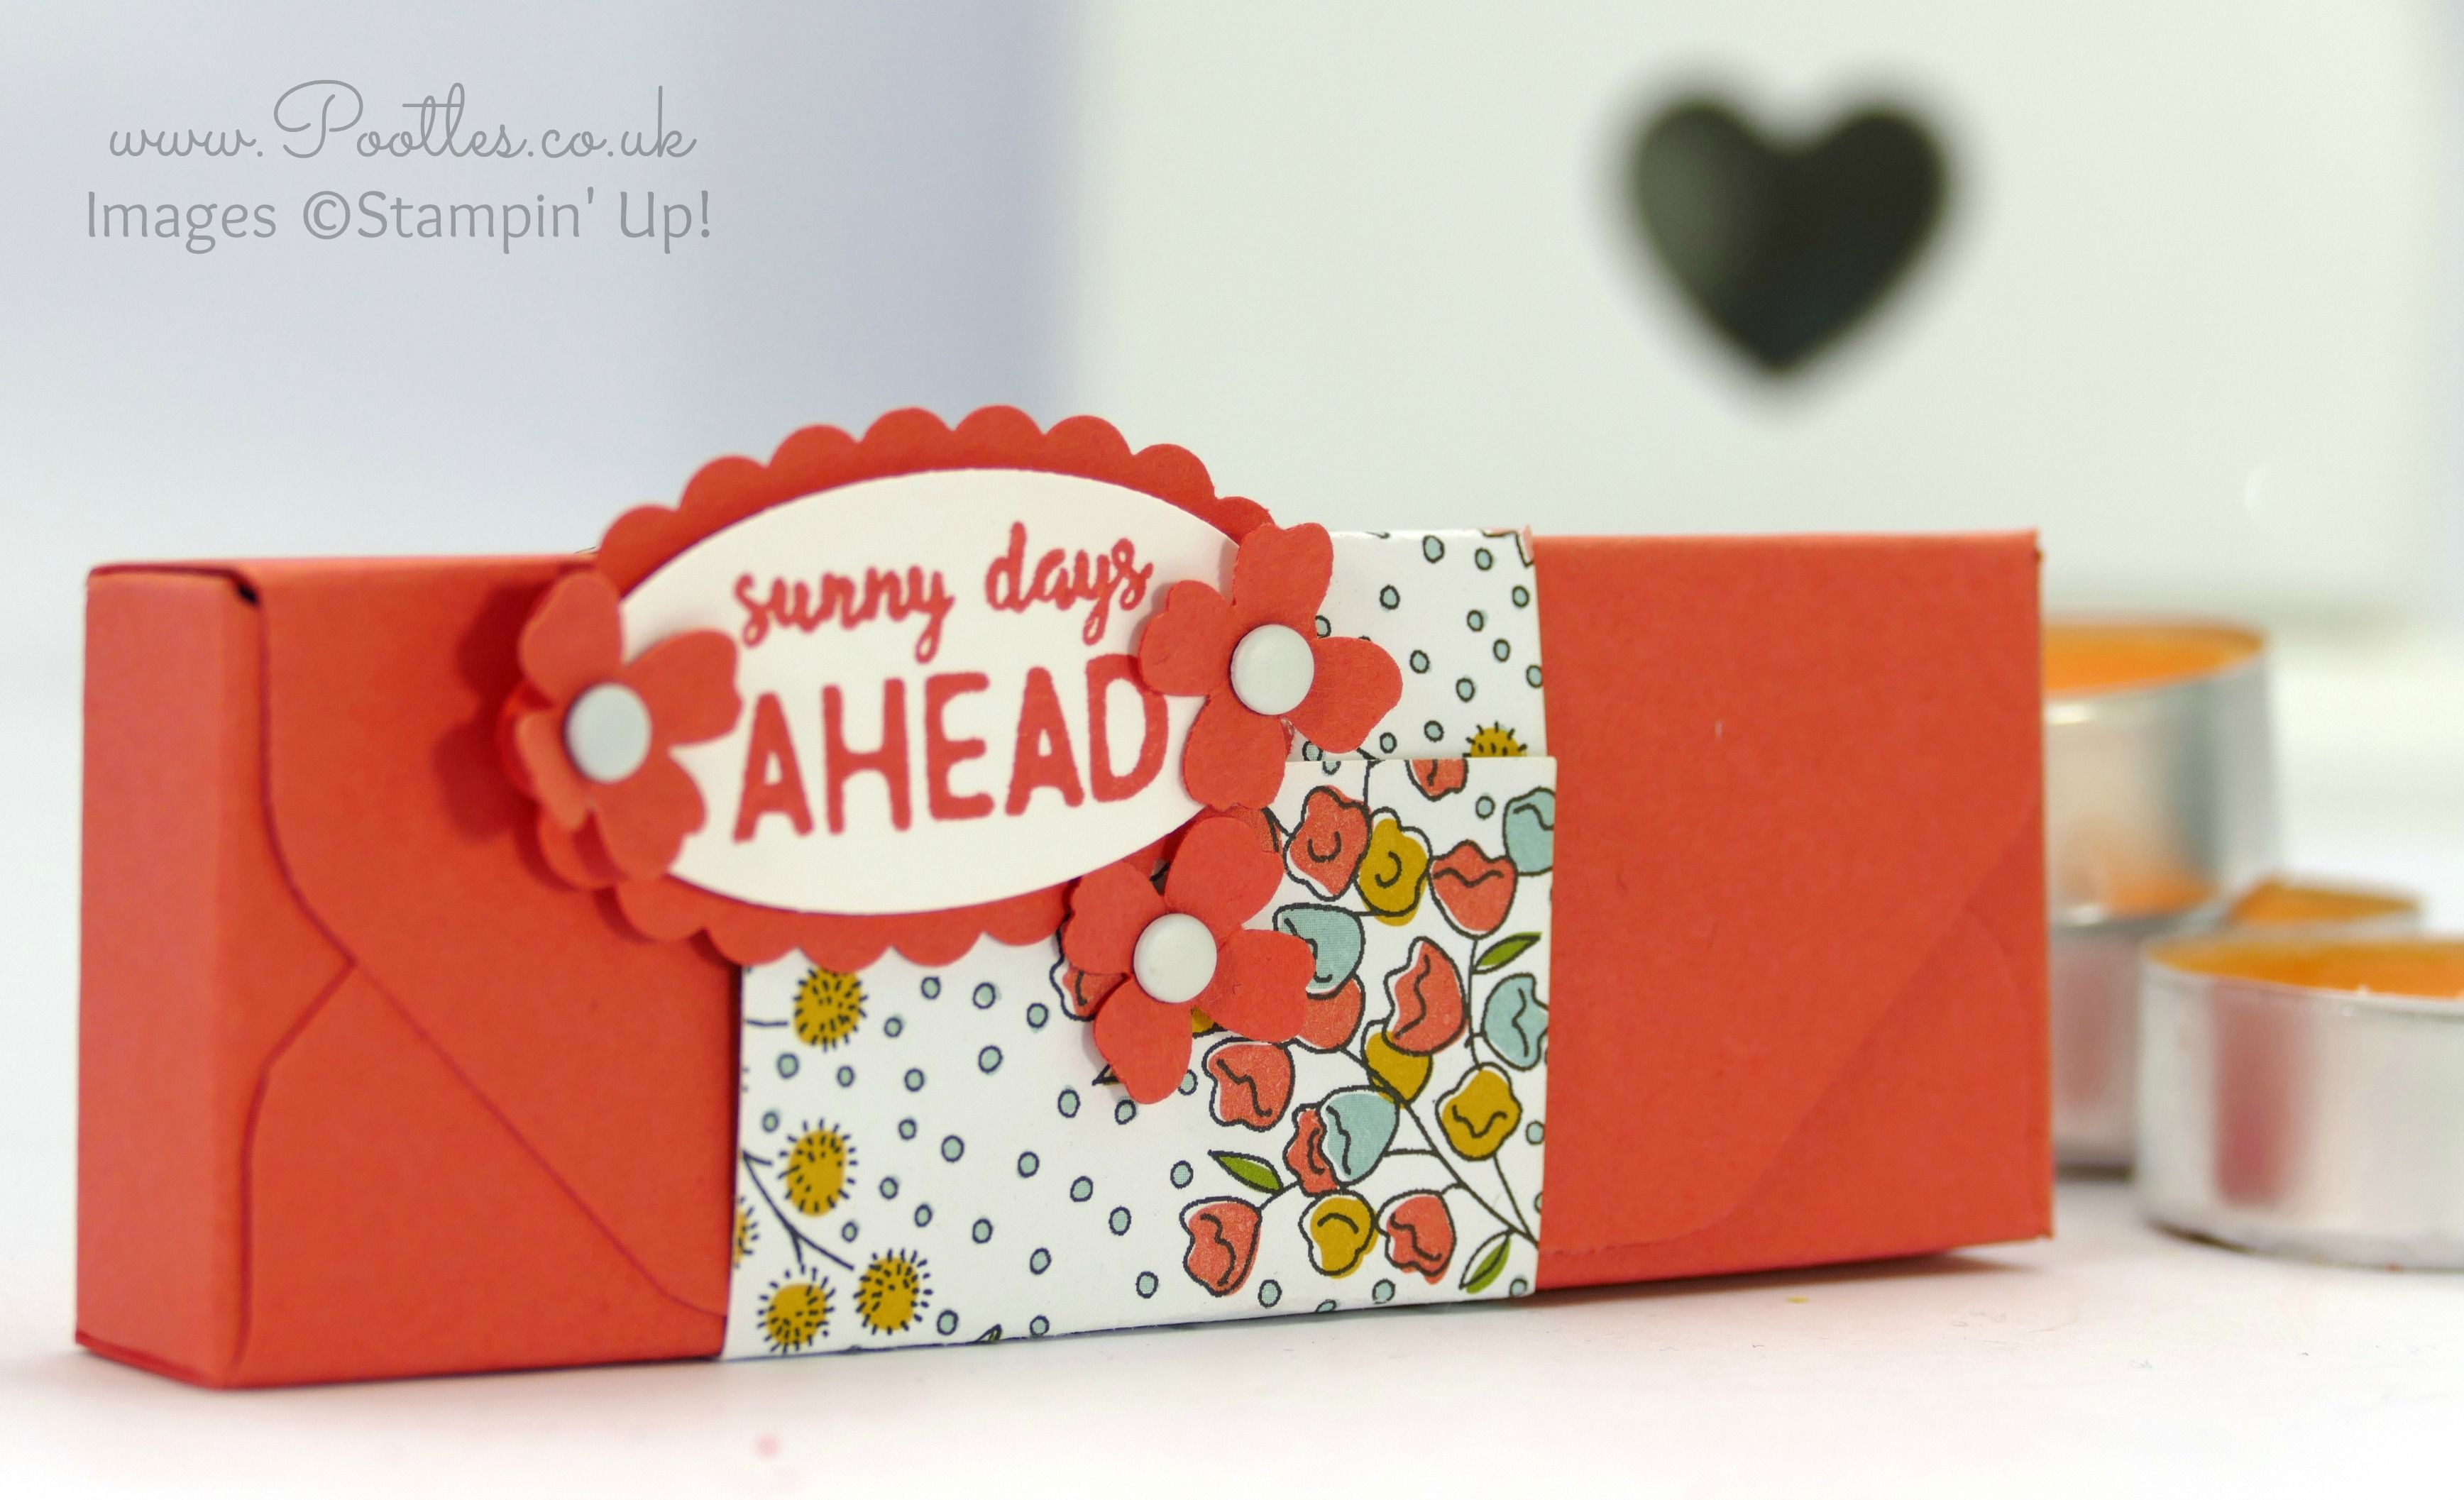 Stampin' Up! Demonstrator Pootles -Envelope Punch Board Ikea Tealight Box Tutorial Ooooo it's a cutey box today! I haven't used the Envelope Punch Board since before Christmas, but one of my new t...